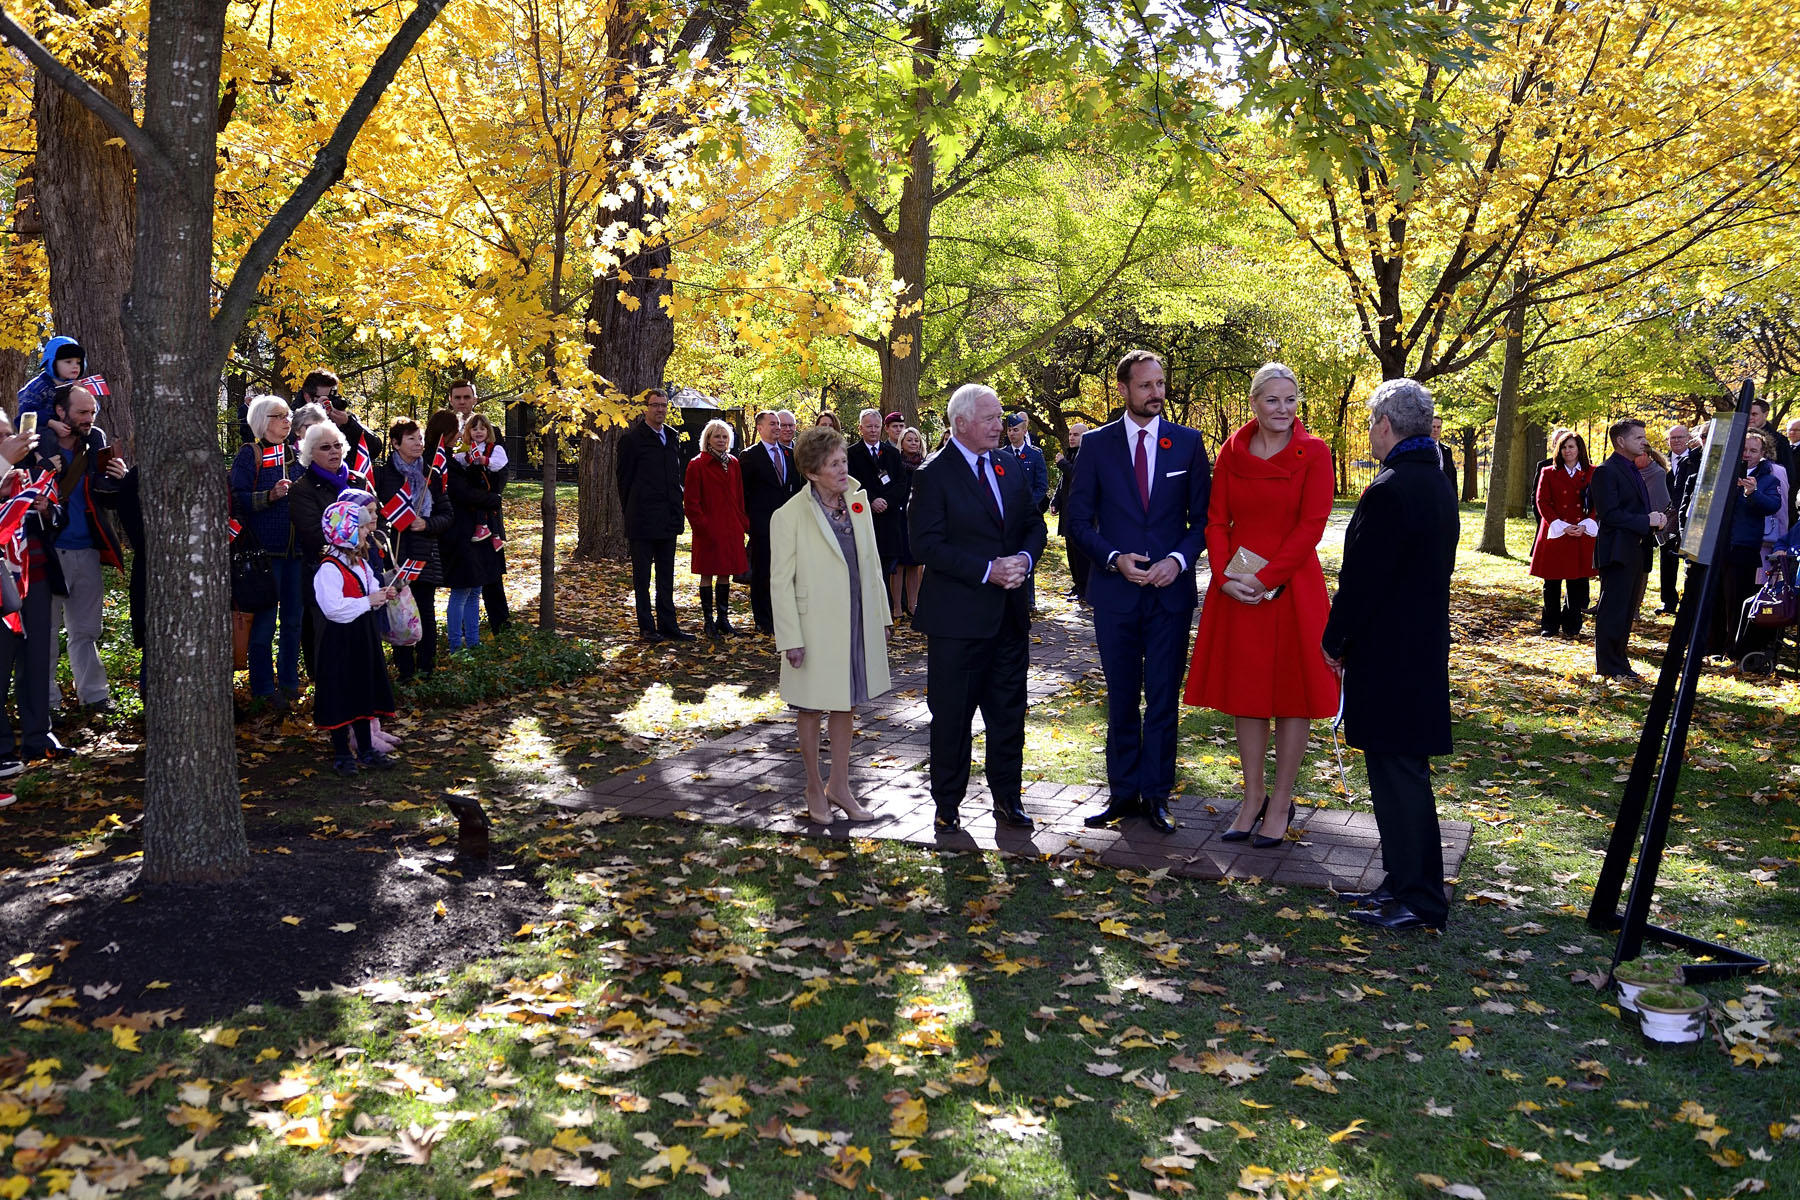 Upon their arrival at Rideau Hall, Their Royal Highnesses joined by Their Excellencies viewed the red oak tree planted by Their Majesties King Harald V and Queen Sonja of the Kingdom of Norway on May 8, 2002, during their State visit to Canada.